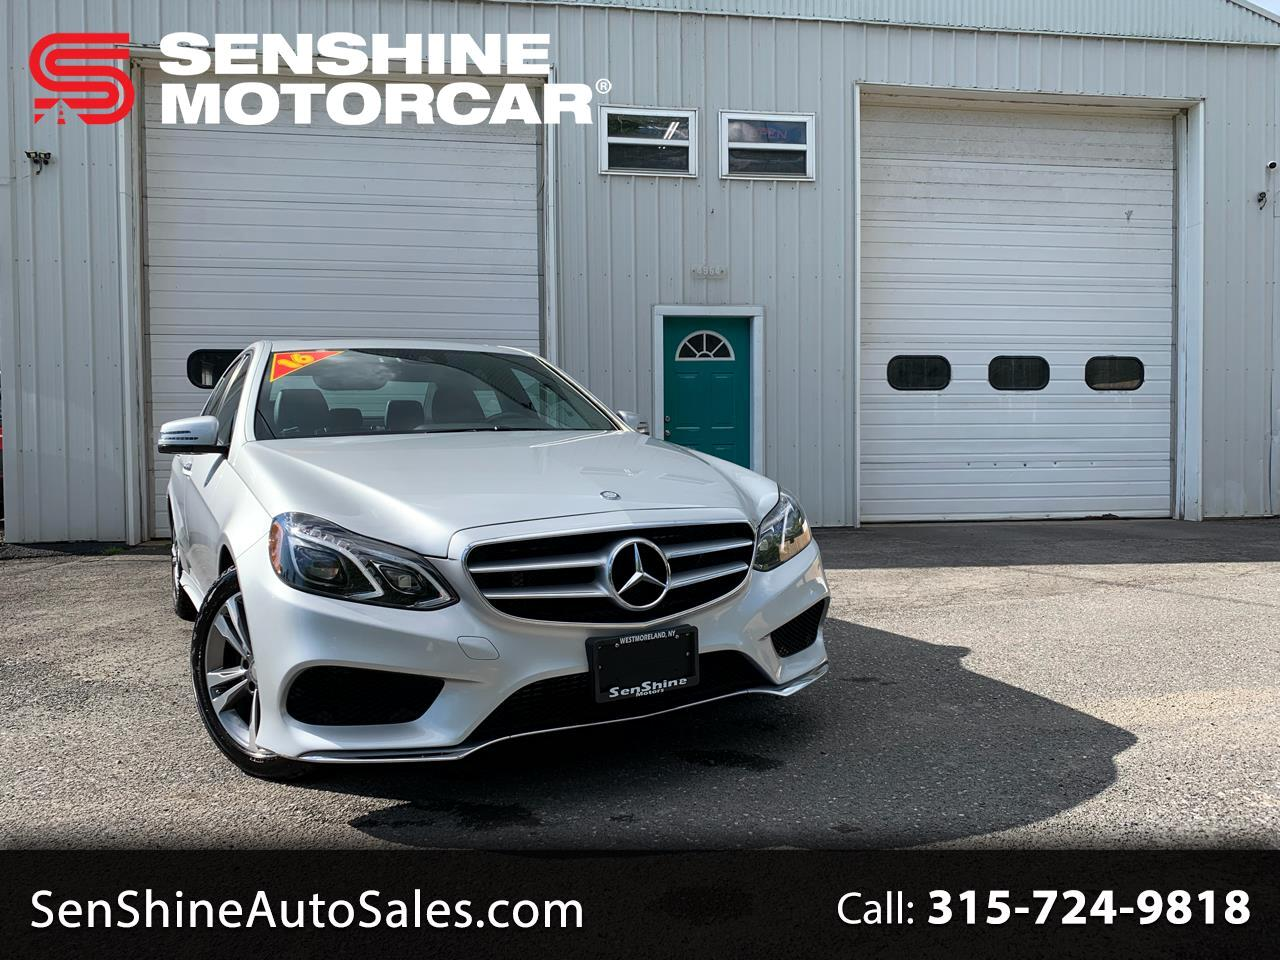 2016 Mercedes-Benz E-Class E250 Luxury BlueTEC 4MATIC Sedan